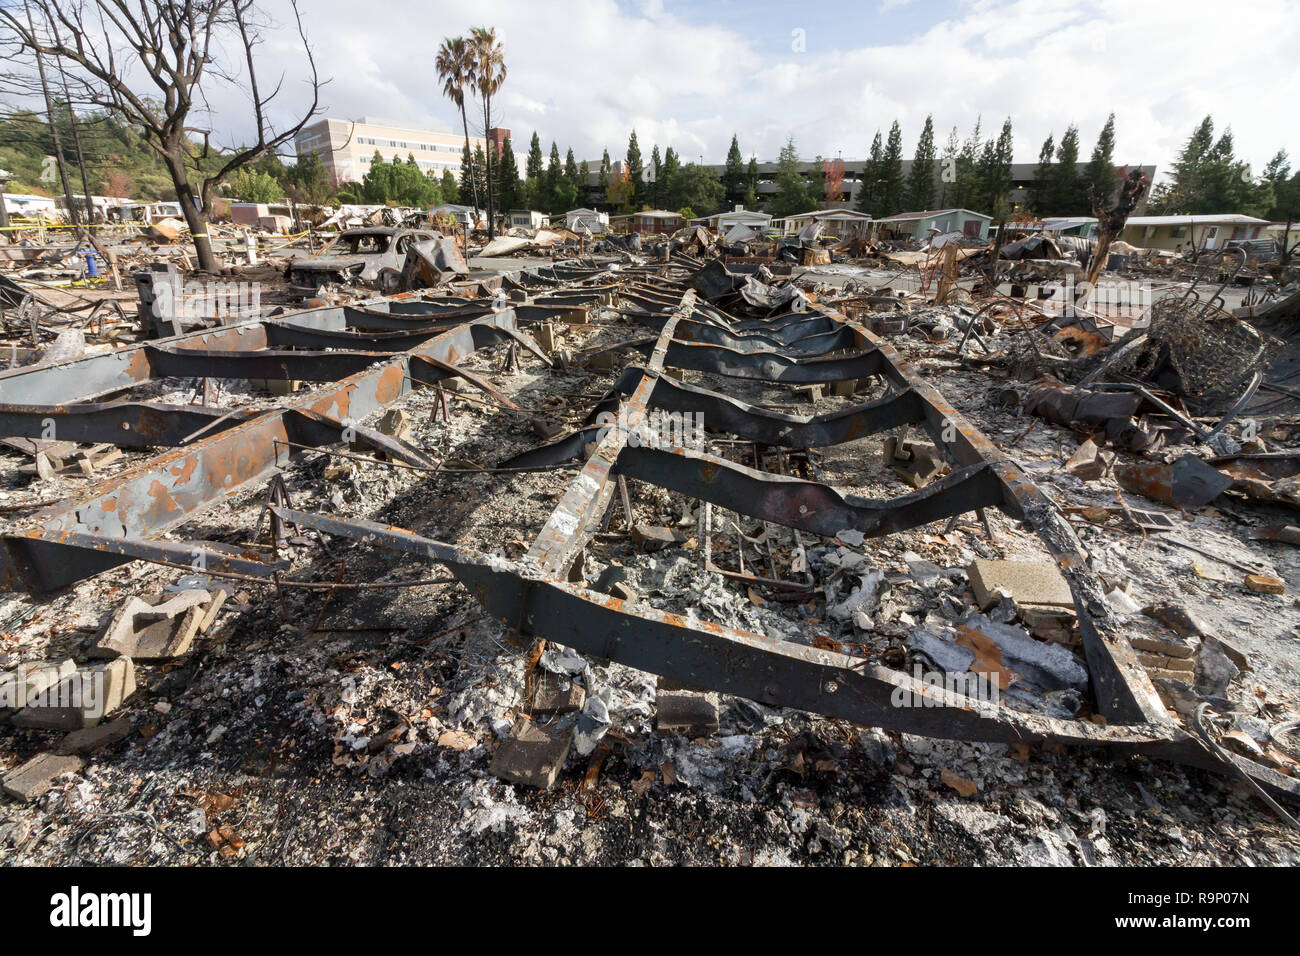 Melted Mobile Home Frame - These images were captured in neighborhoods near Santa Rosa, California, where wildfires in early October 2017. - Stock Image